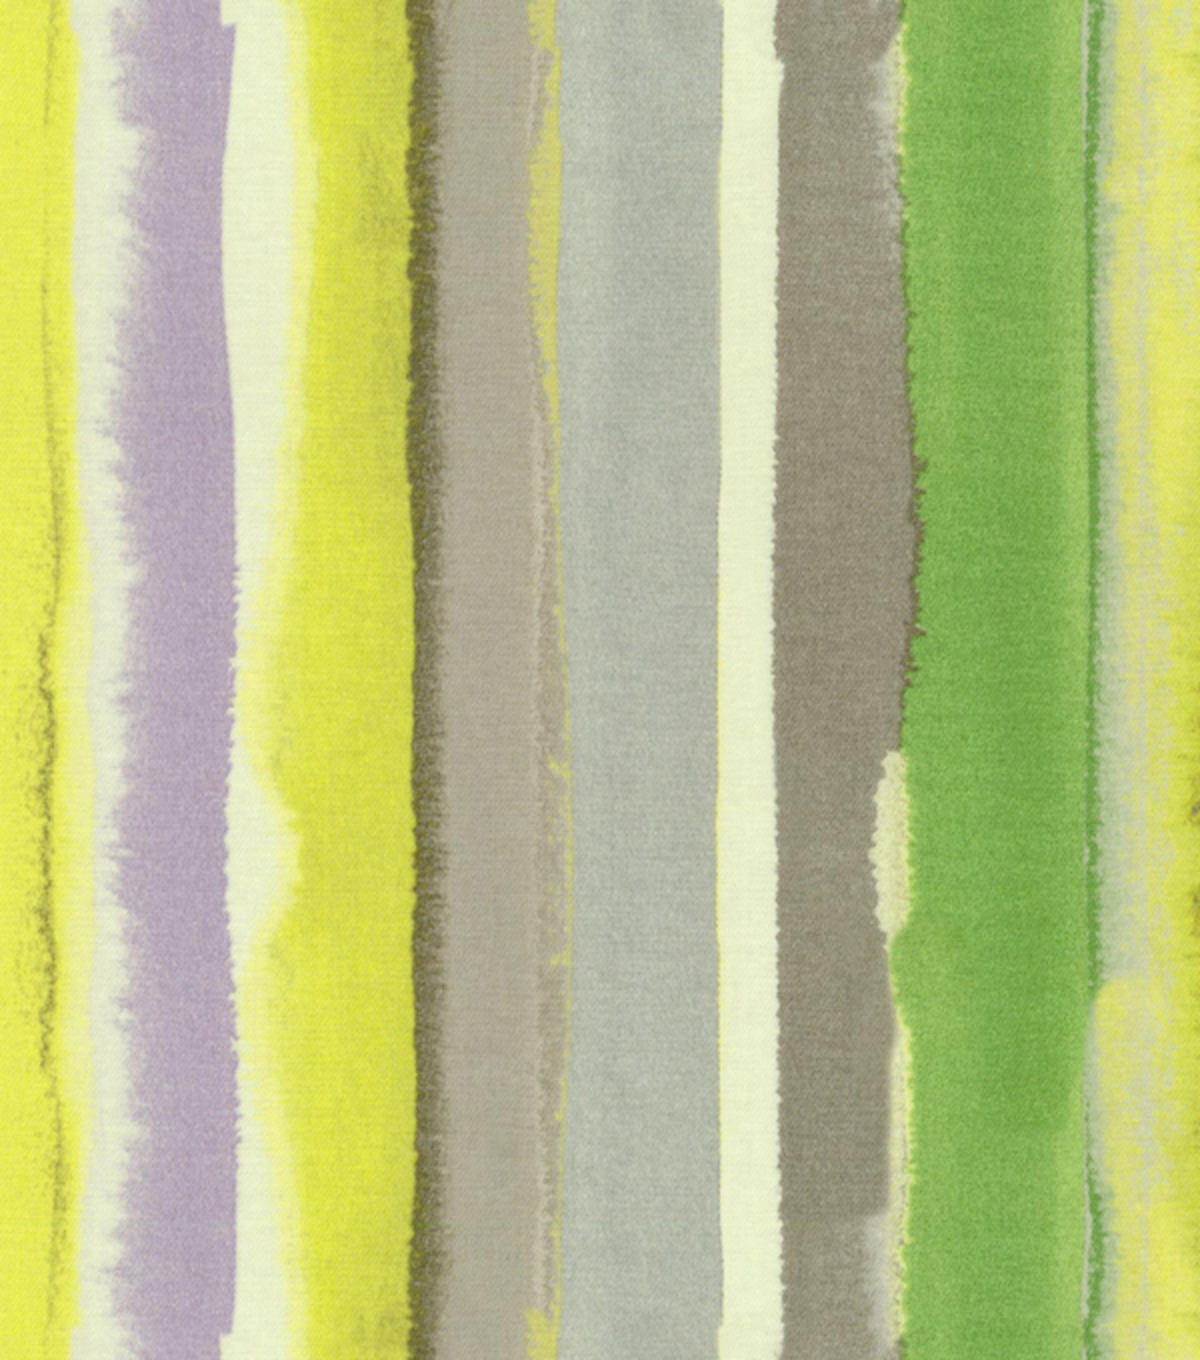 Home Decor 8\u0022x8\u0022 Fabric Swatch-HGTV HOME Artistic Streak Platinum